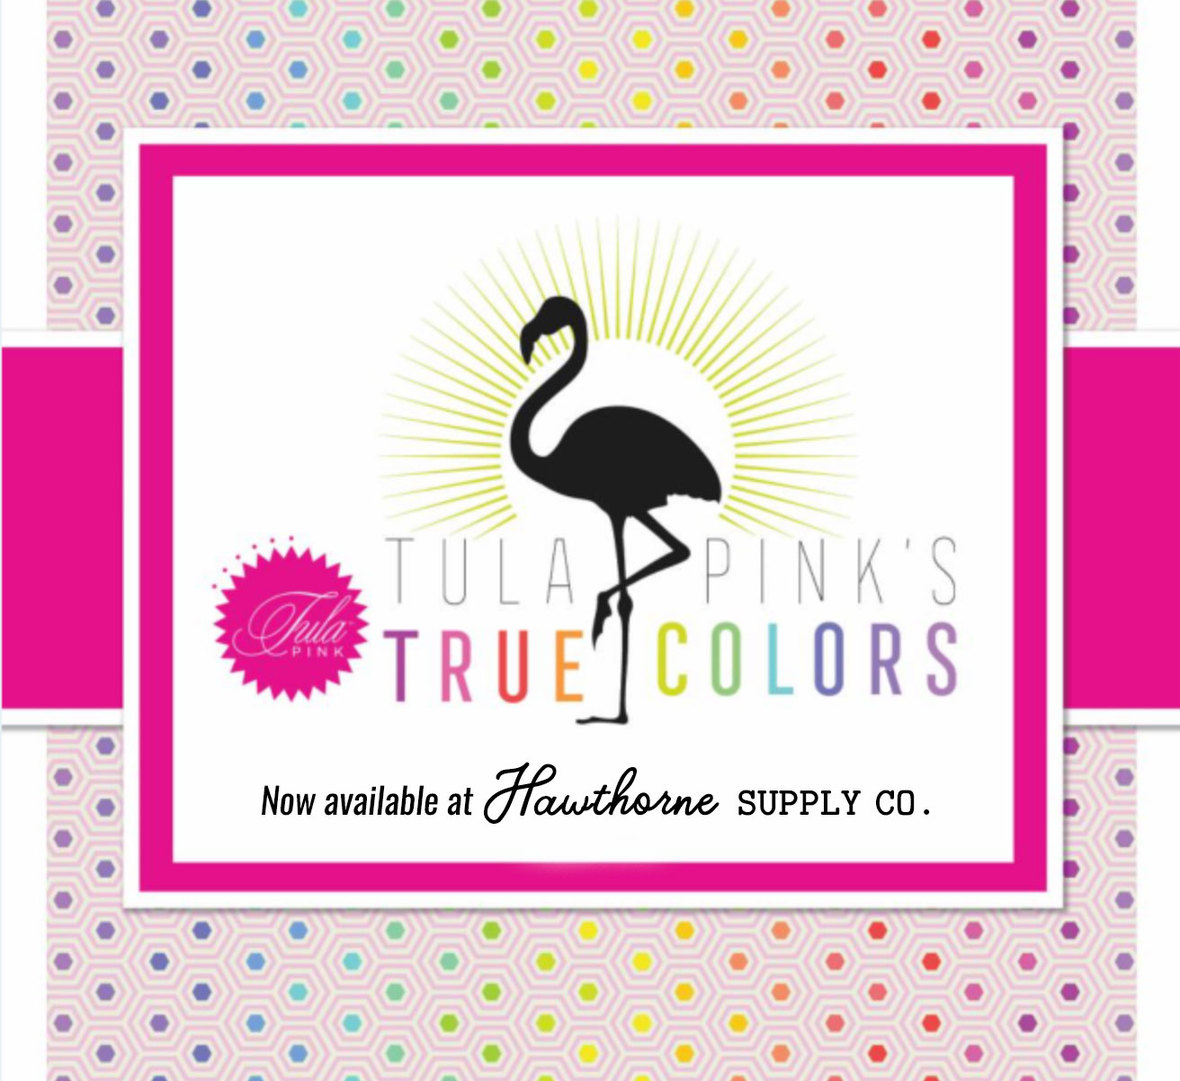 Tula-Pink-New-True-Colors-Fabric-at-Hawthorne-Supply-Co